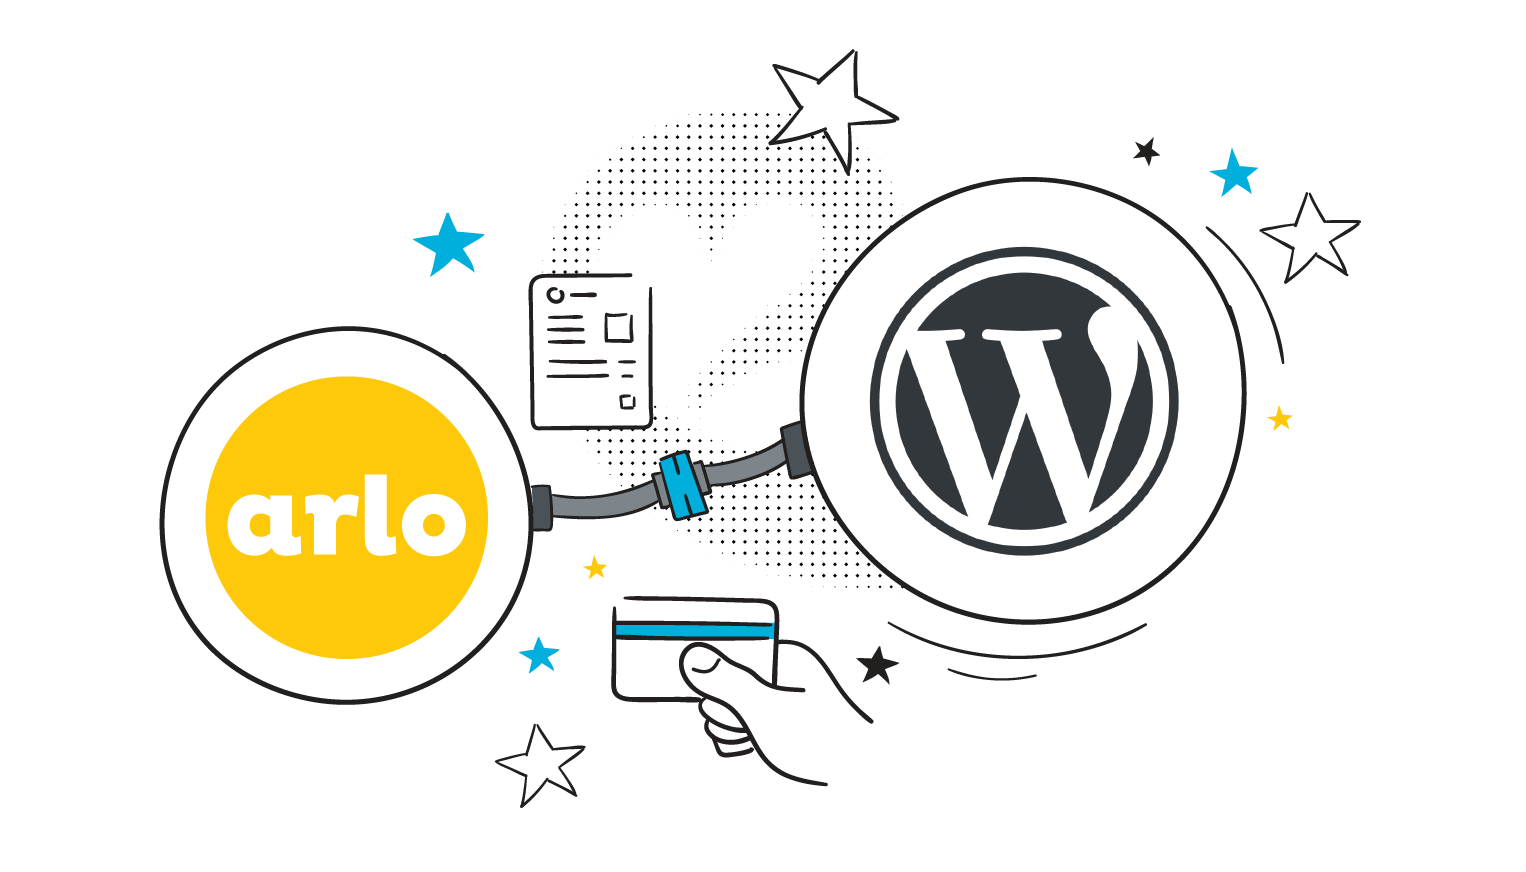 Arlo's WordPress plugin lets you integrate Arlo with your WordPress website.